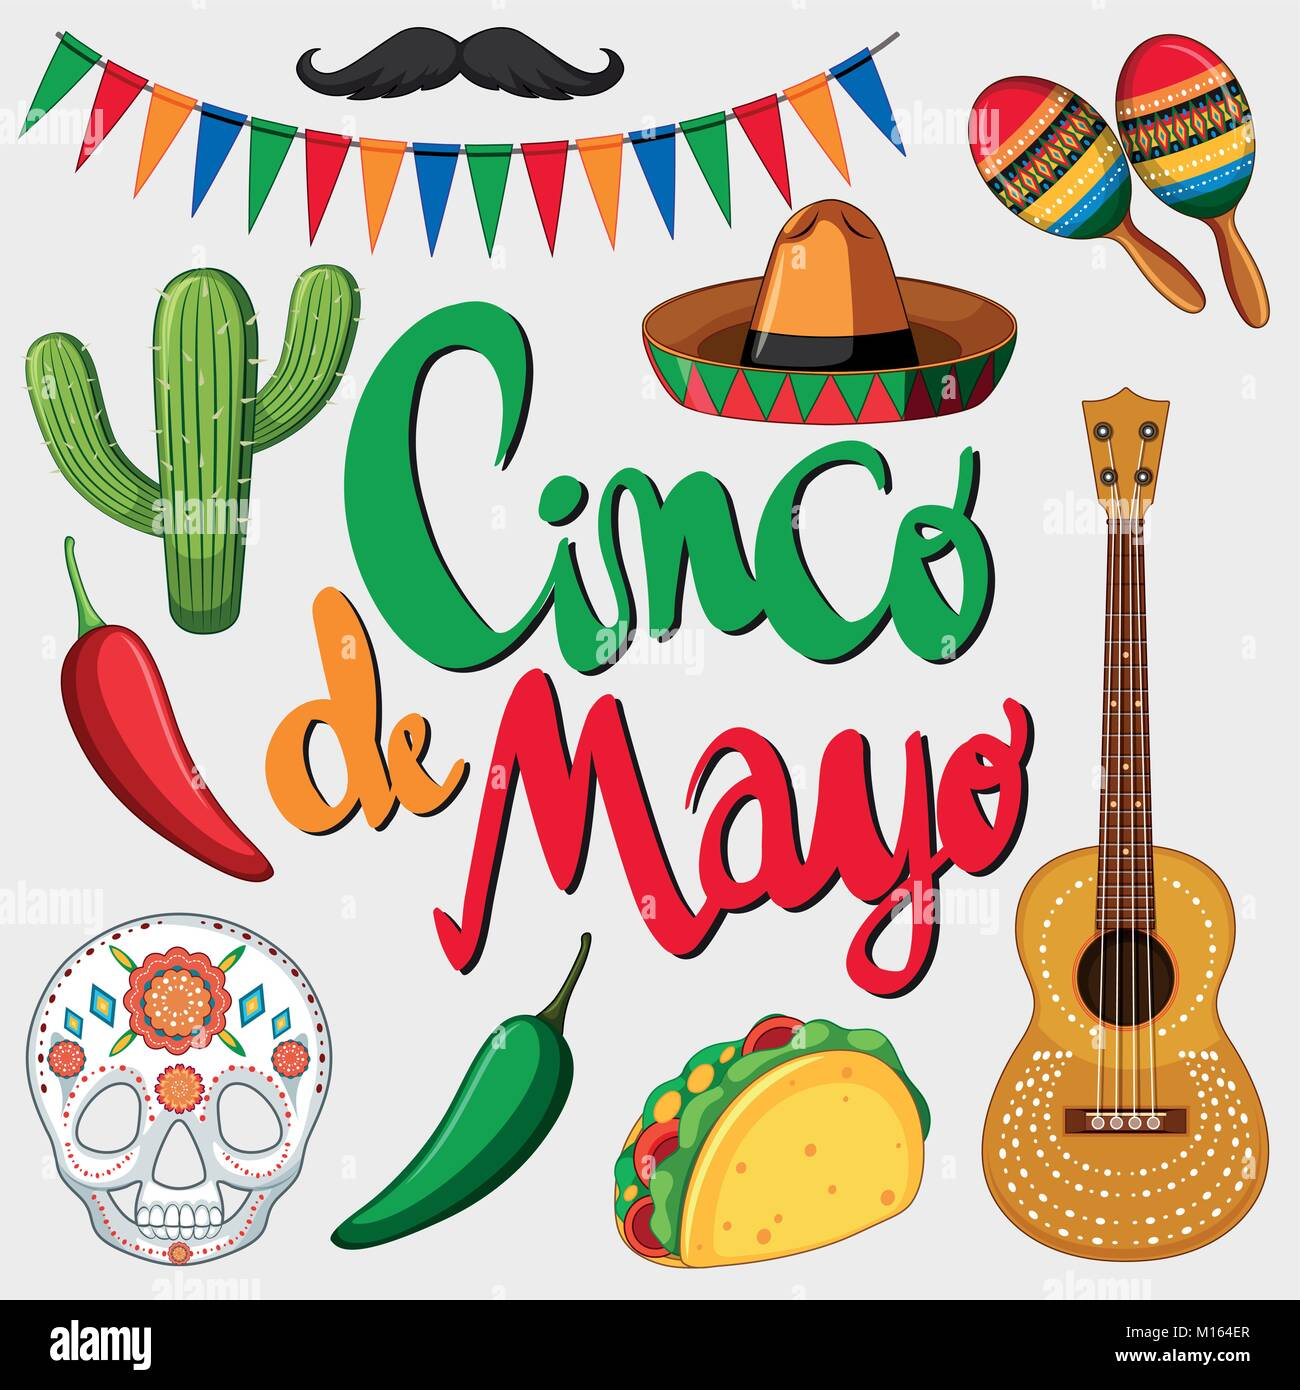 cinco de mayo card template with mexican hat and food illustration